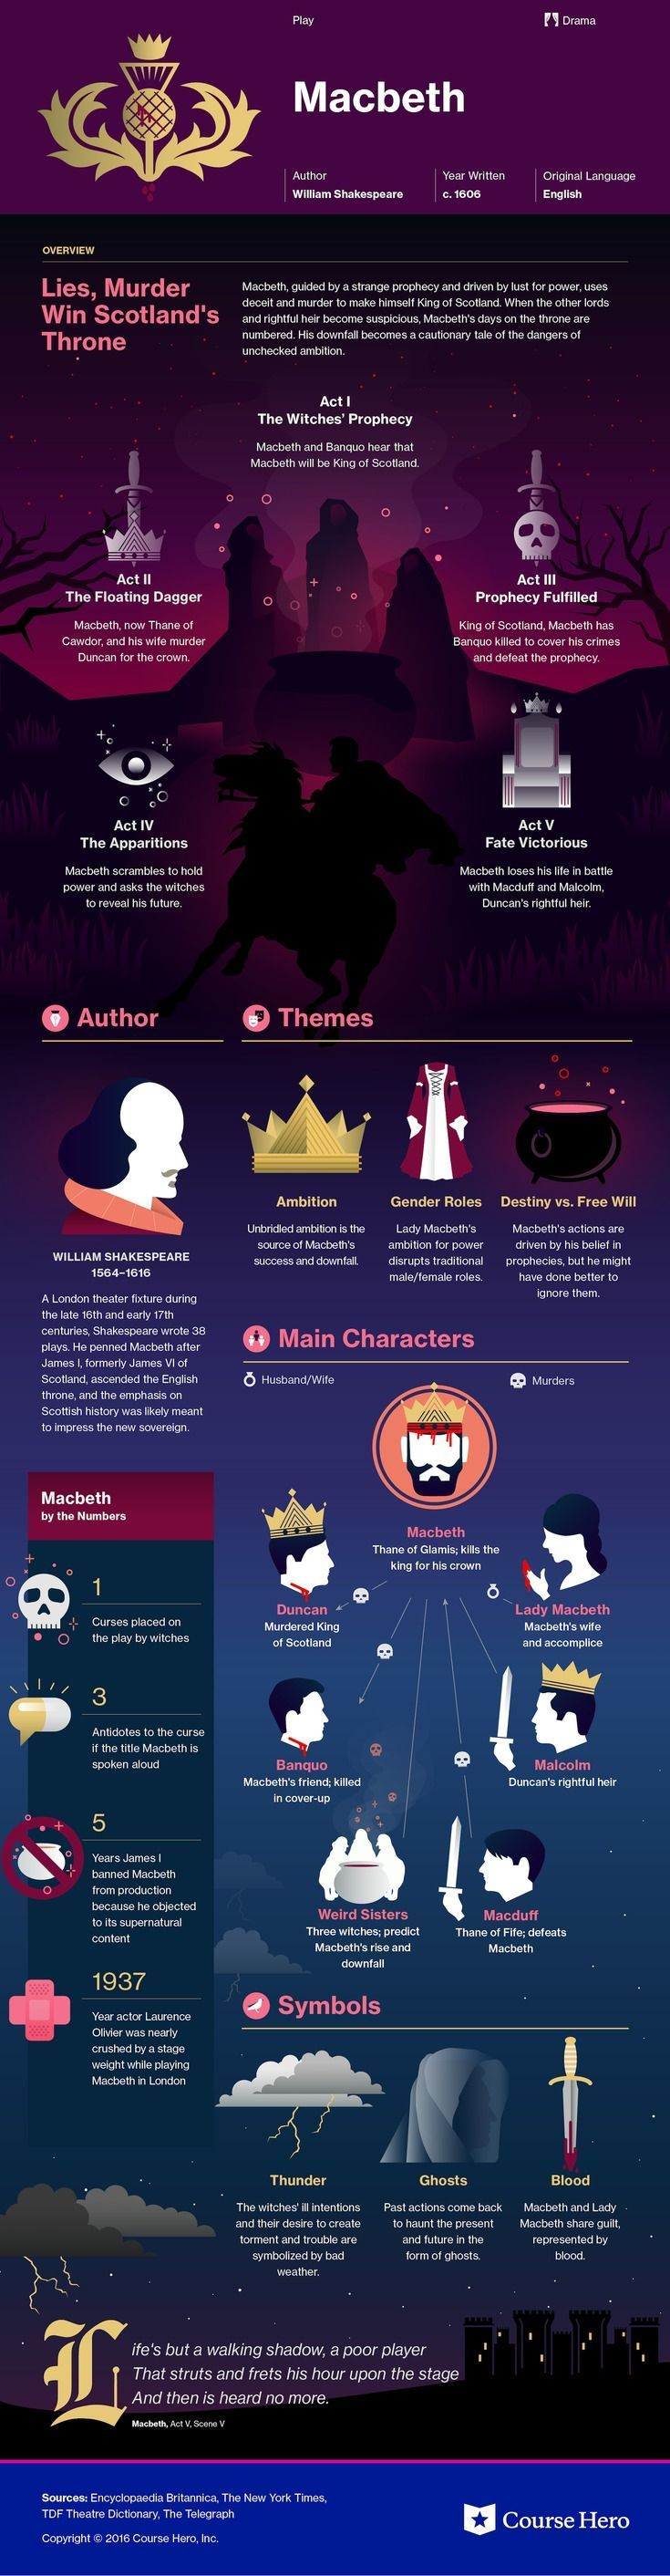 plot summary of macbeth Macbeth study guide contains a biography of william shakespeare, literature essays, a complete e-text, quiz questions, major themes, characters, and a full summary.